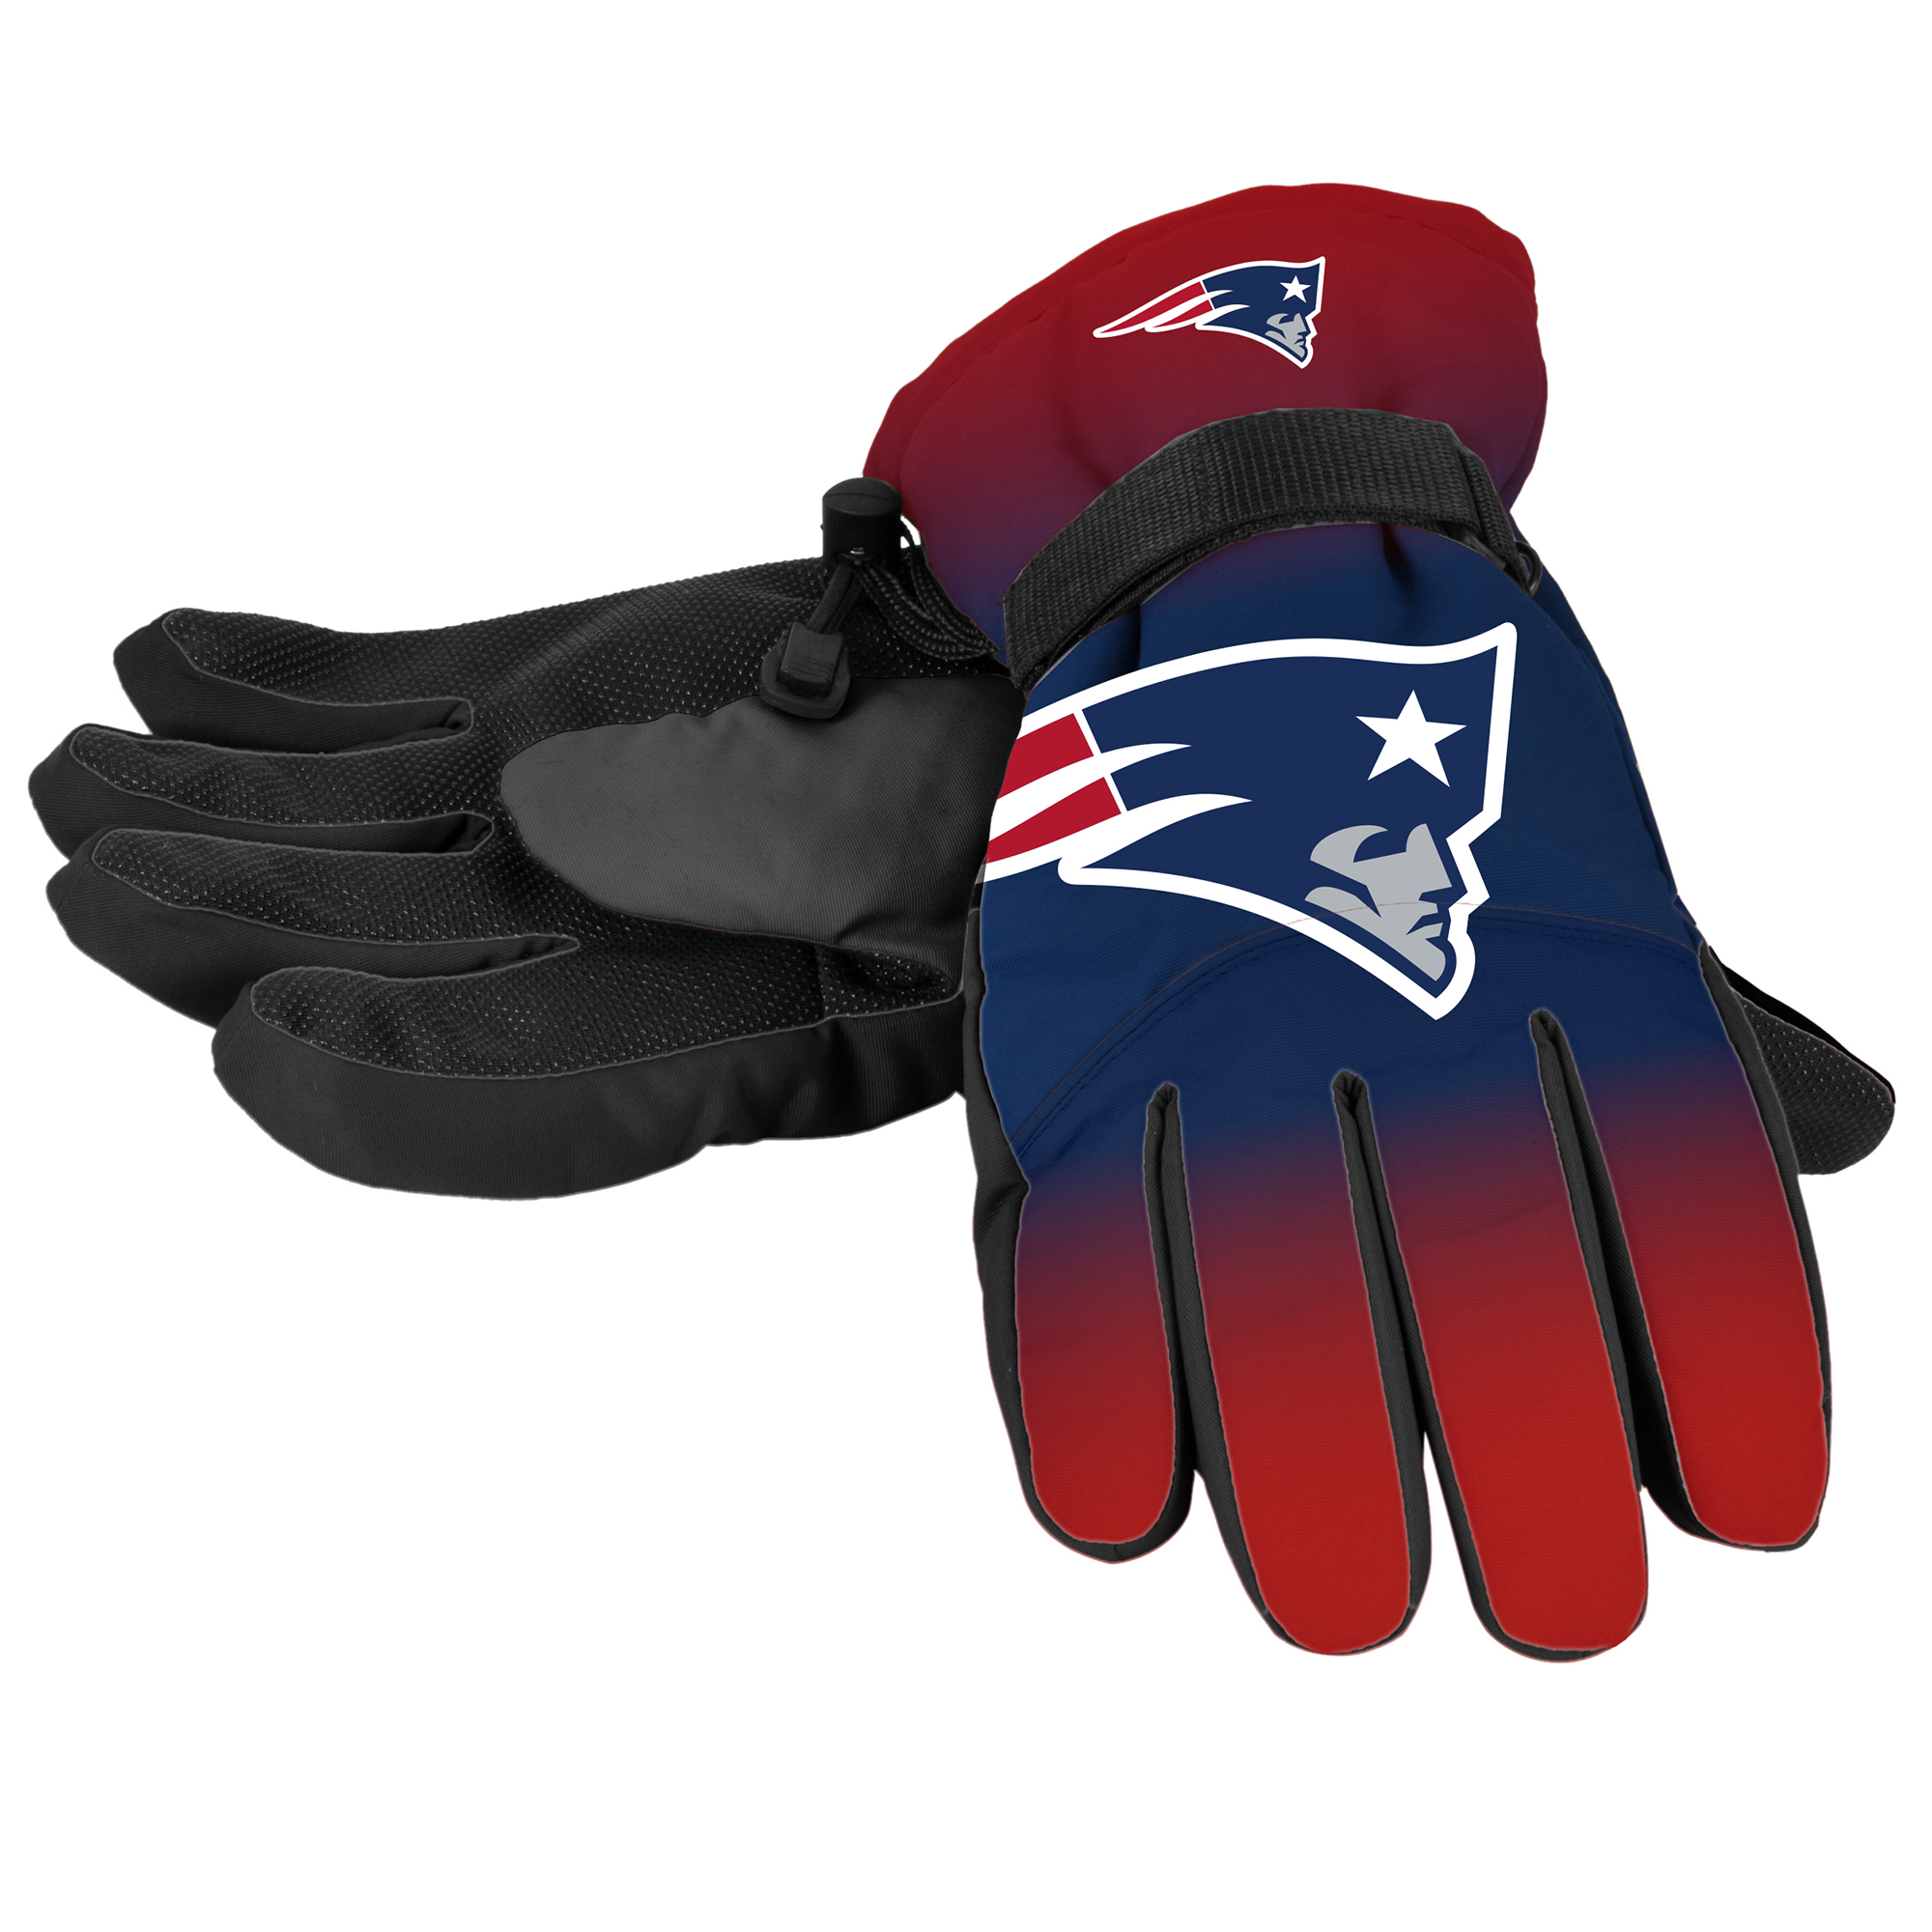 Forever Collectibles - NFL Gradient Big Logo Insulated Gloves-Small/Medium, New England Patriots